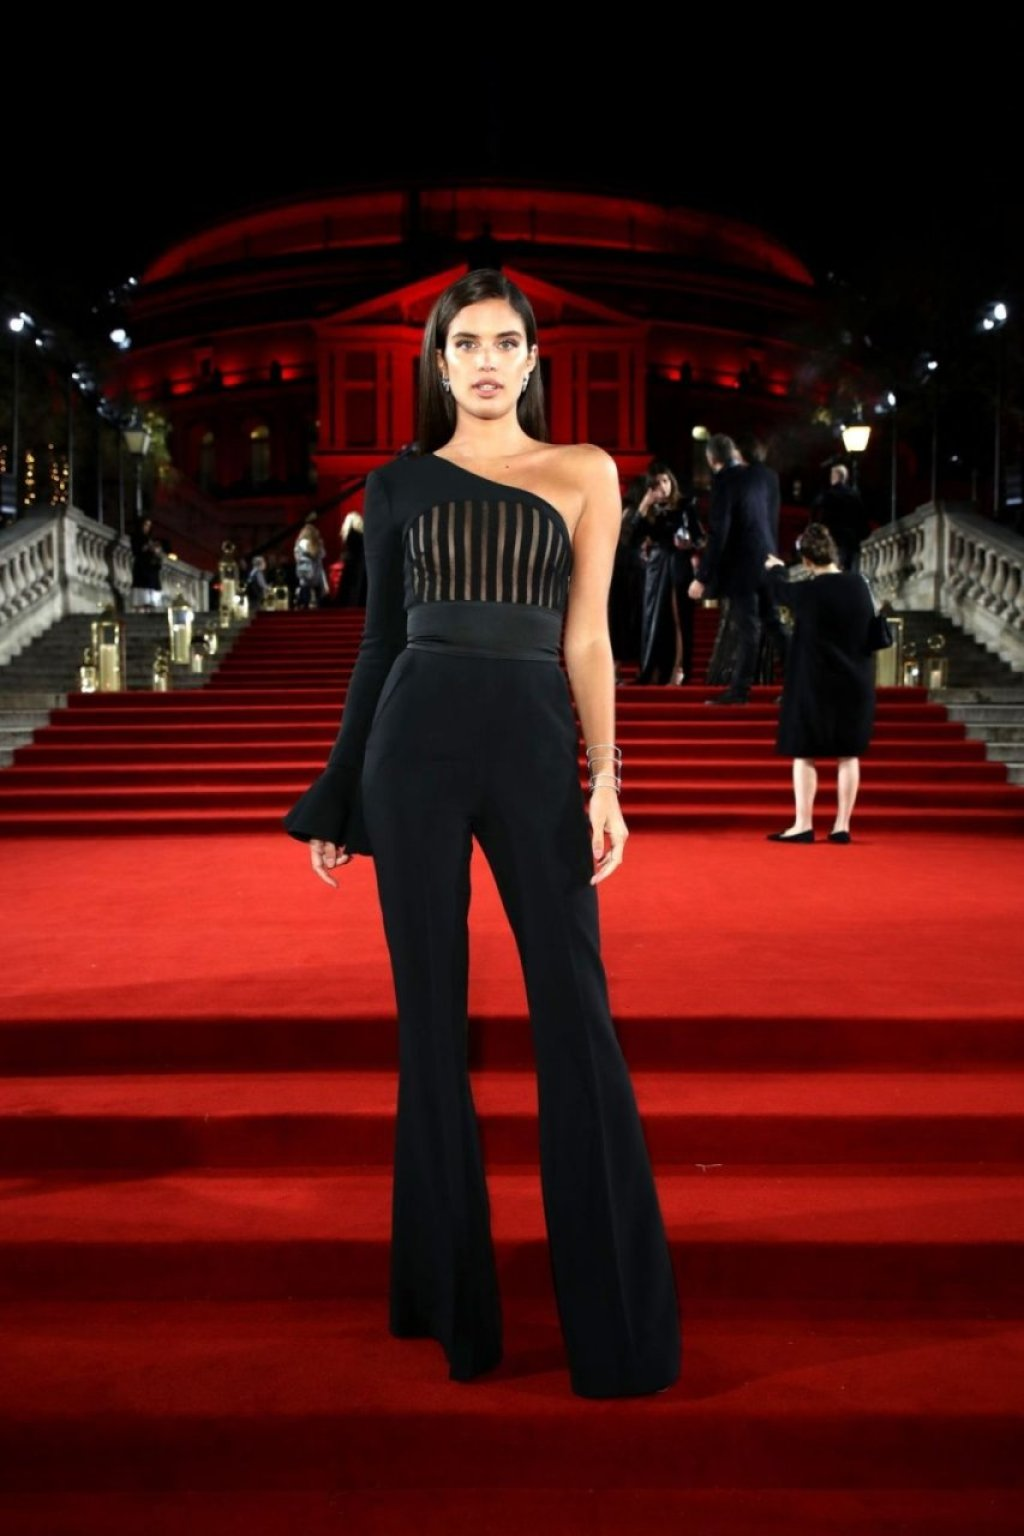 Sara Sampaio See Through (22 Photos)